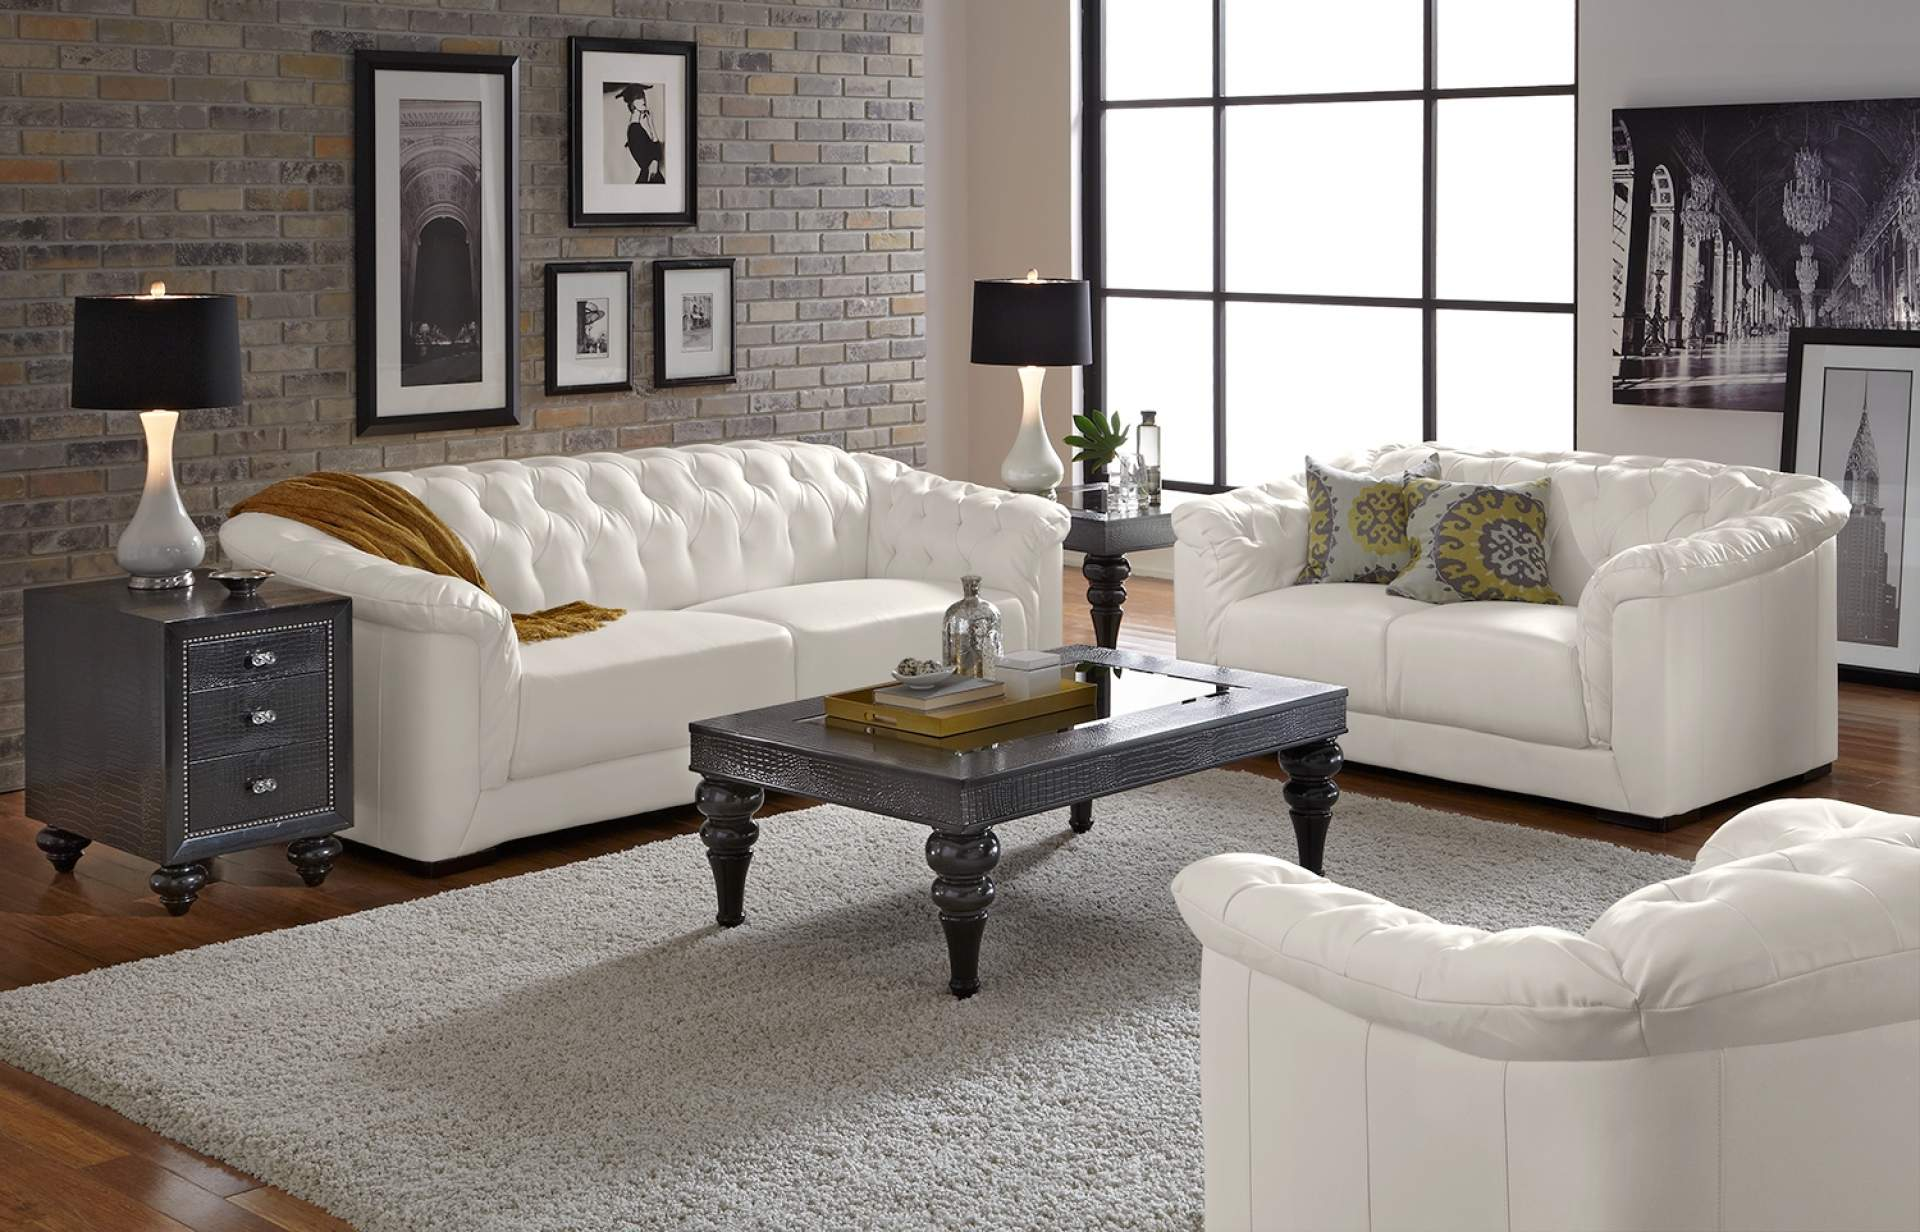 Living Room With White Leather Couch 1920x1232 Wallpaper Teahub Io